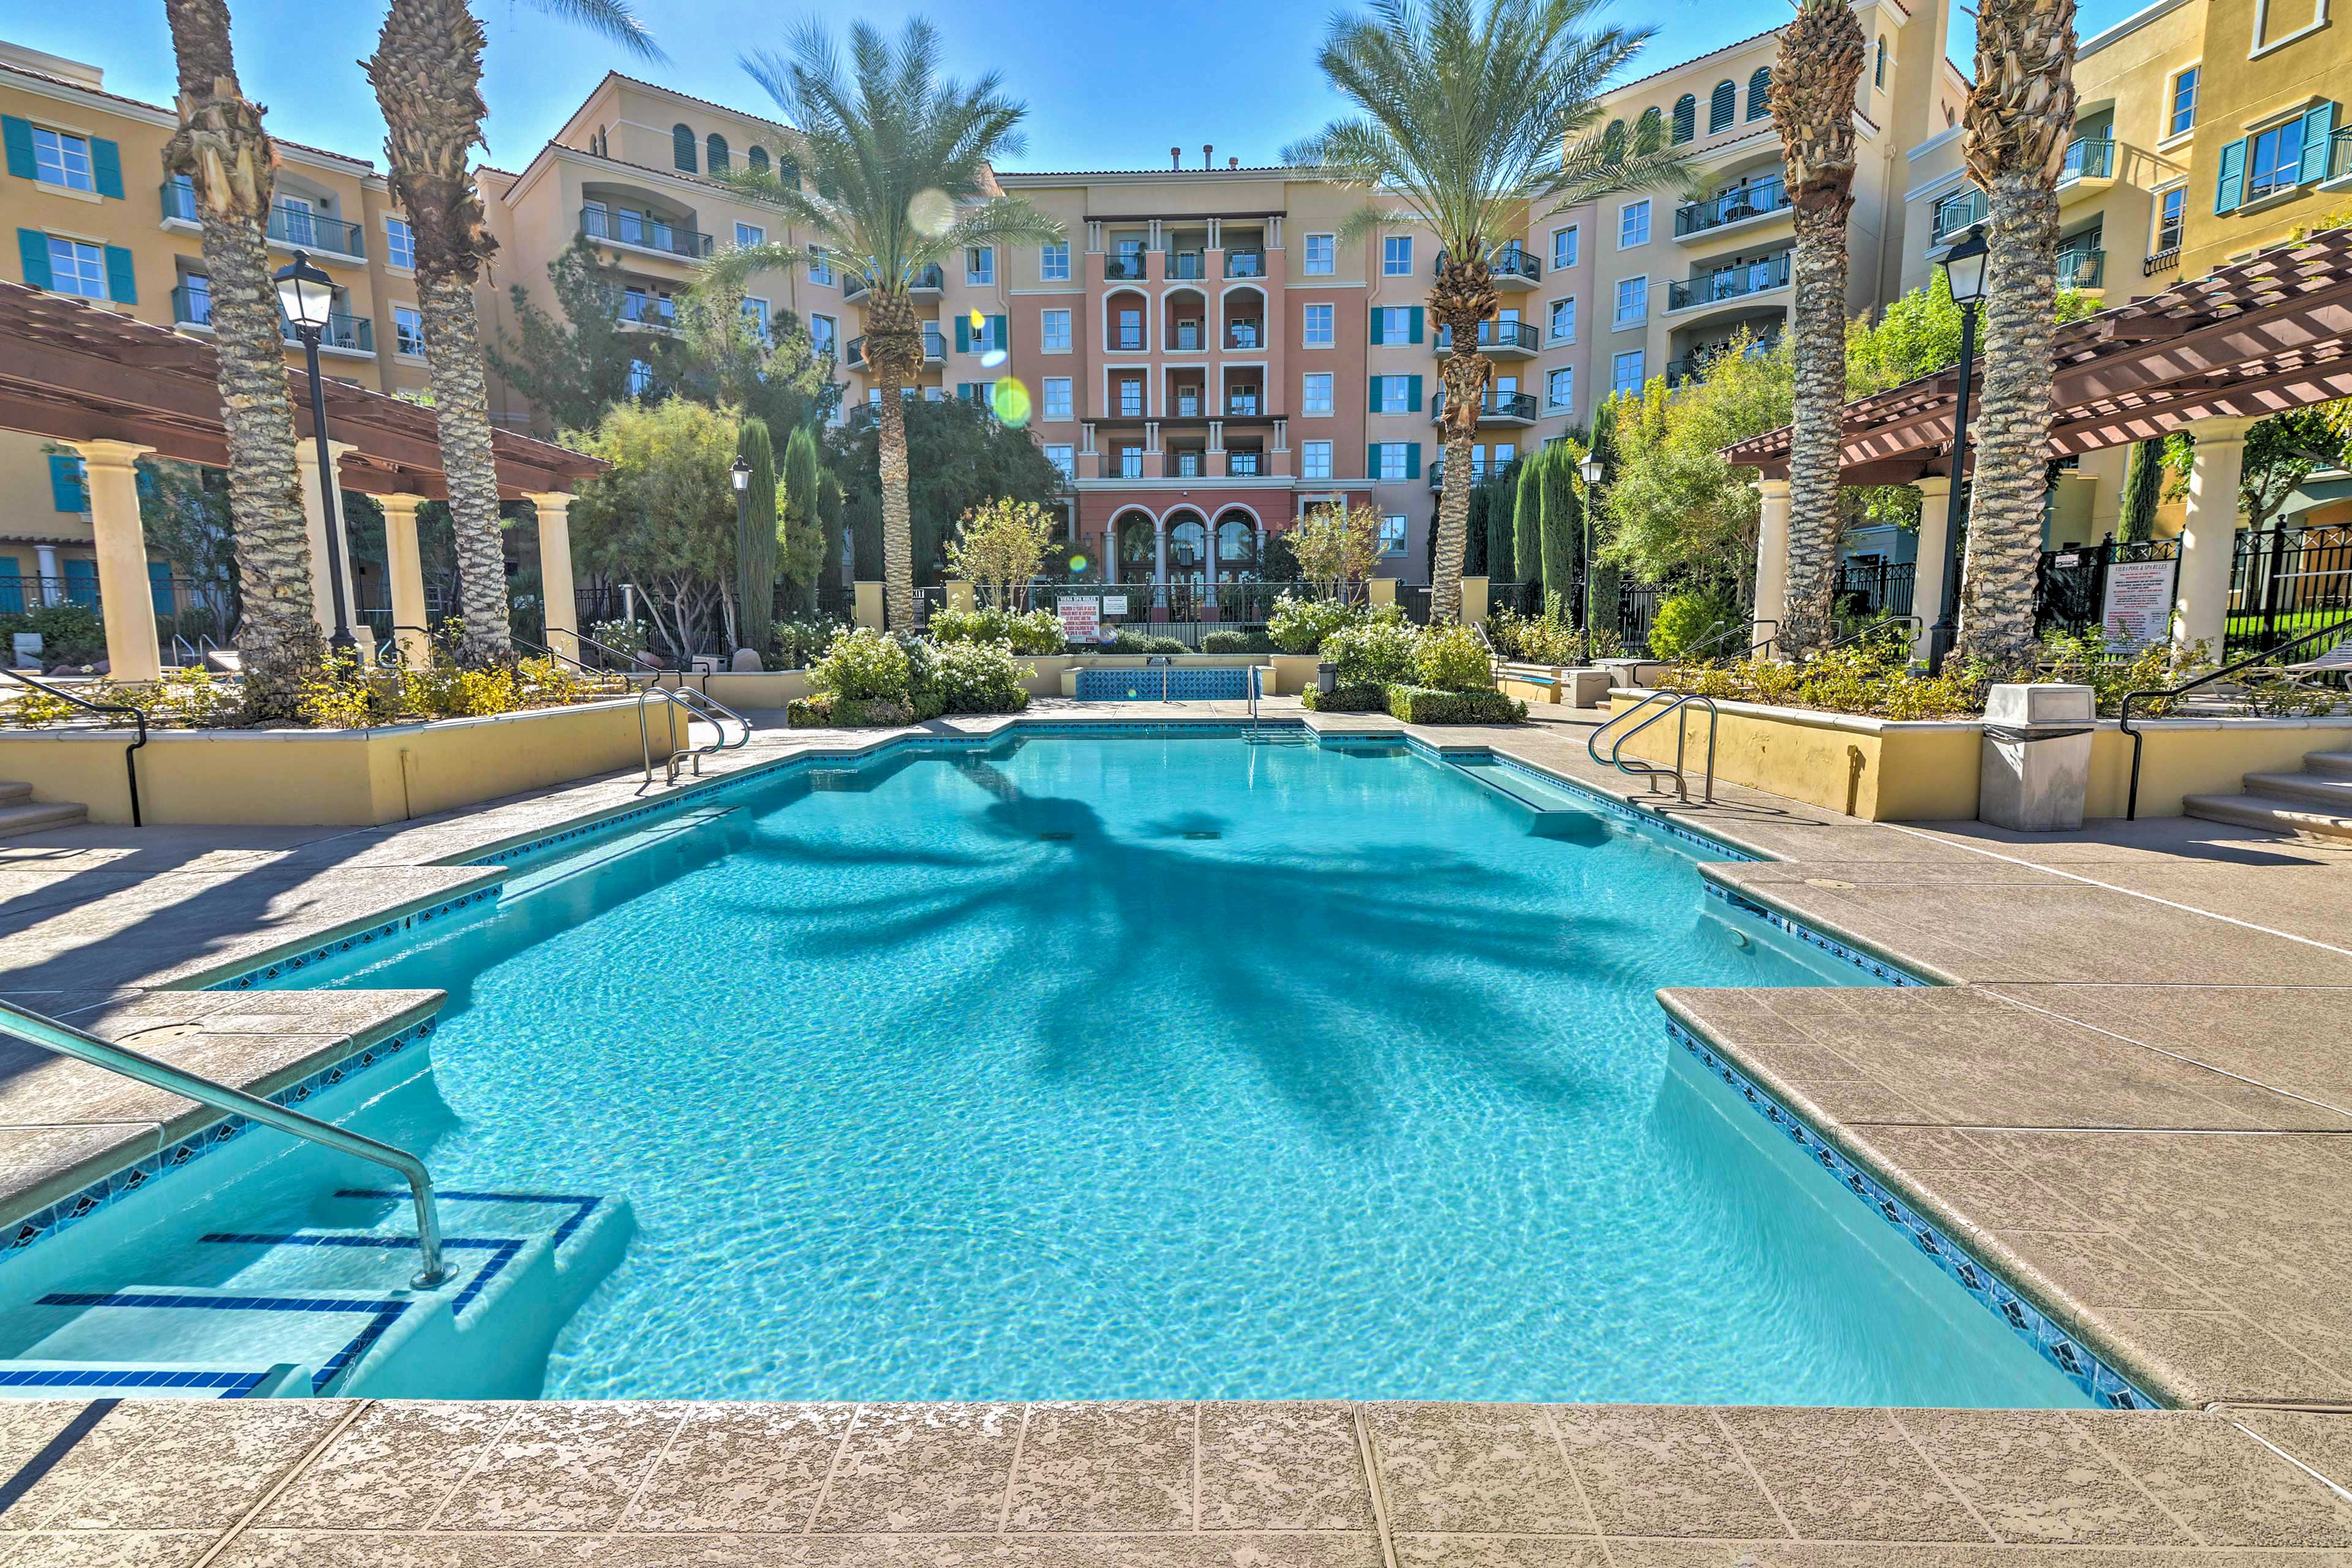 Soak up the Nevada sun by the resort pool!